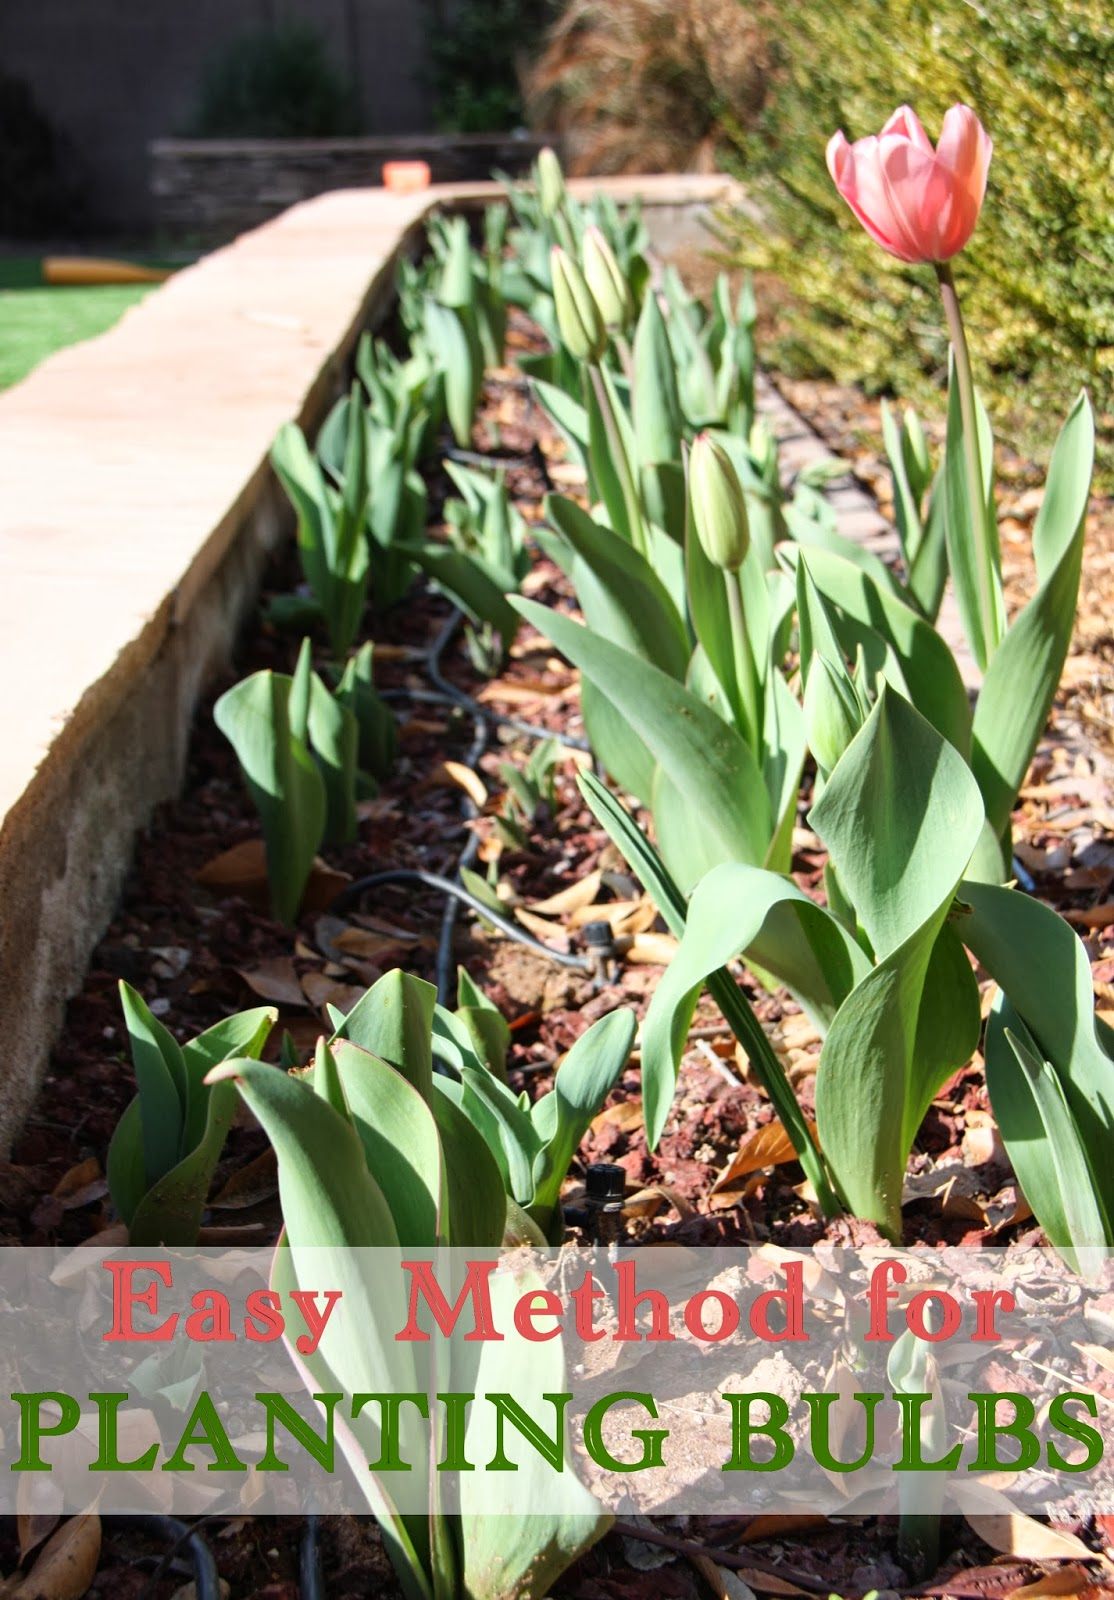 Easy method for planting bulbs